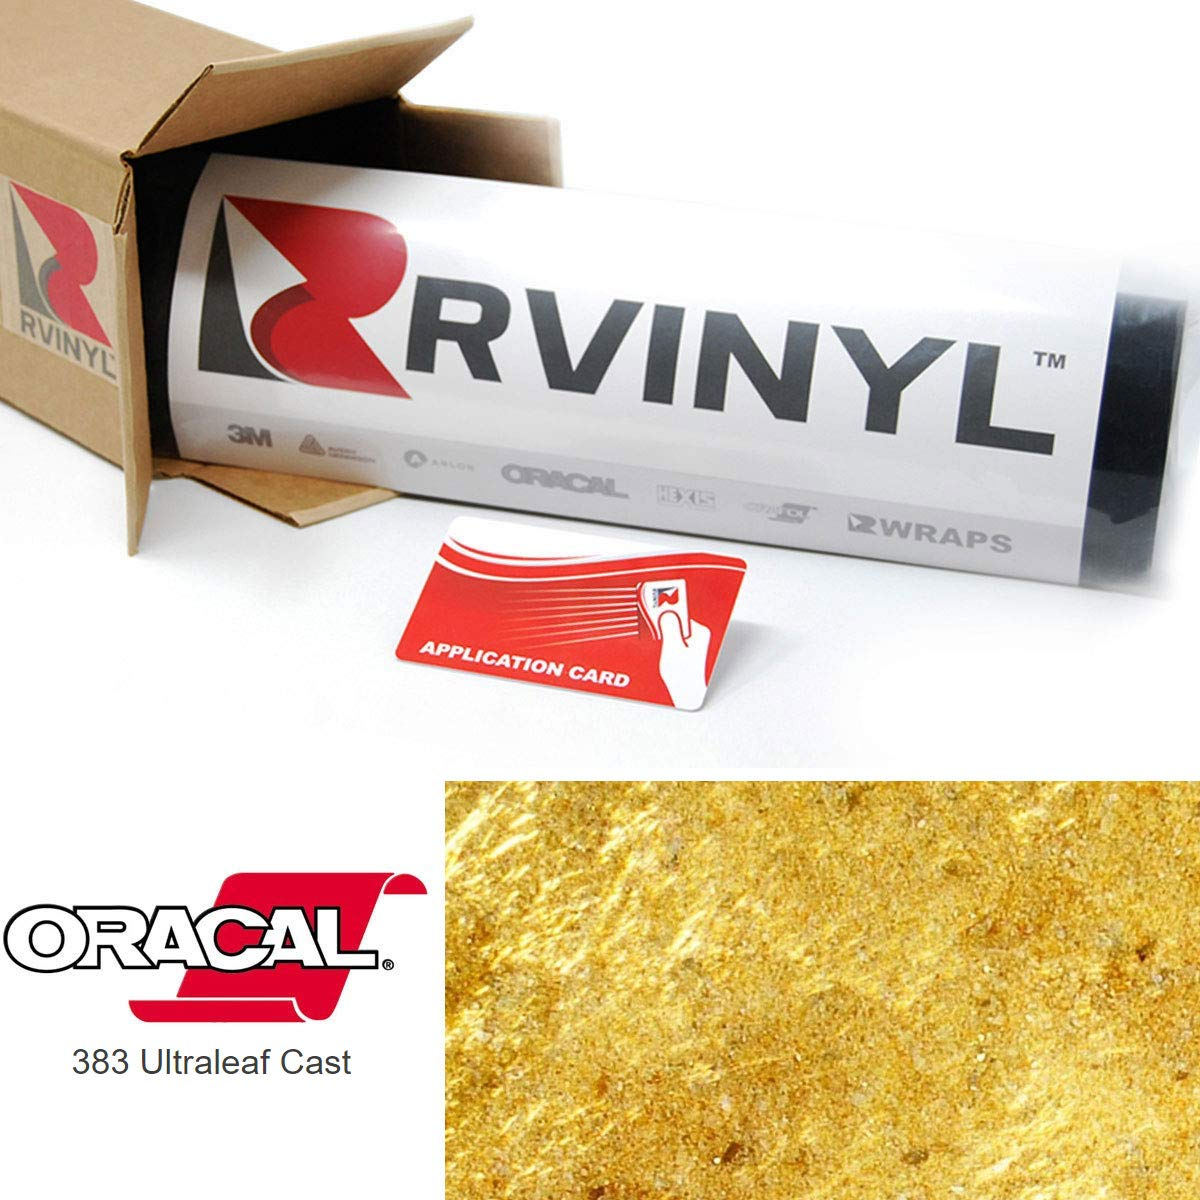 ORACAL 383 Gold 003 Ultraleaf Cast Film 2ft x 10ft W/Application Card Vinyl Film Sheet Roll - for Cricut, Silhouette Cameo, Craft and Sign Cutters